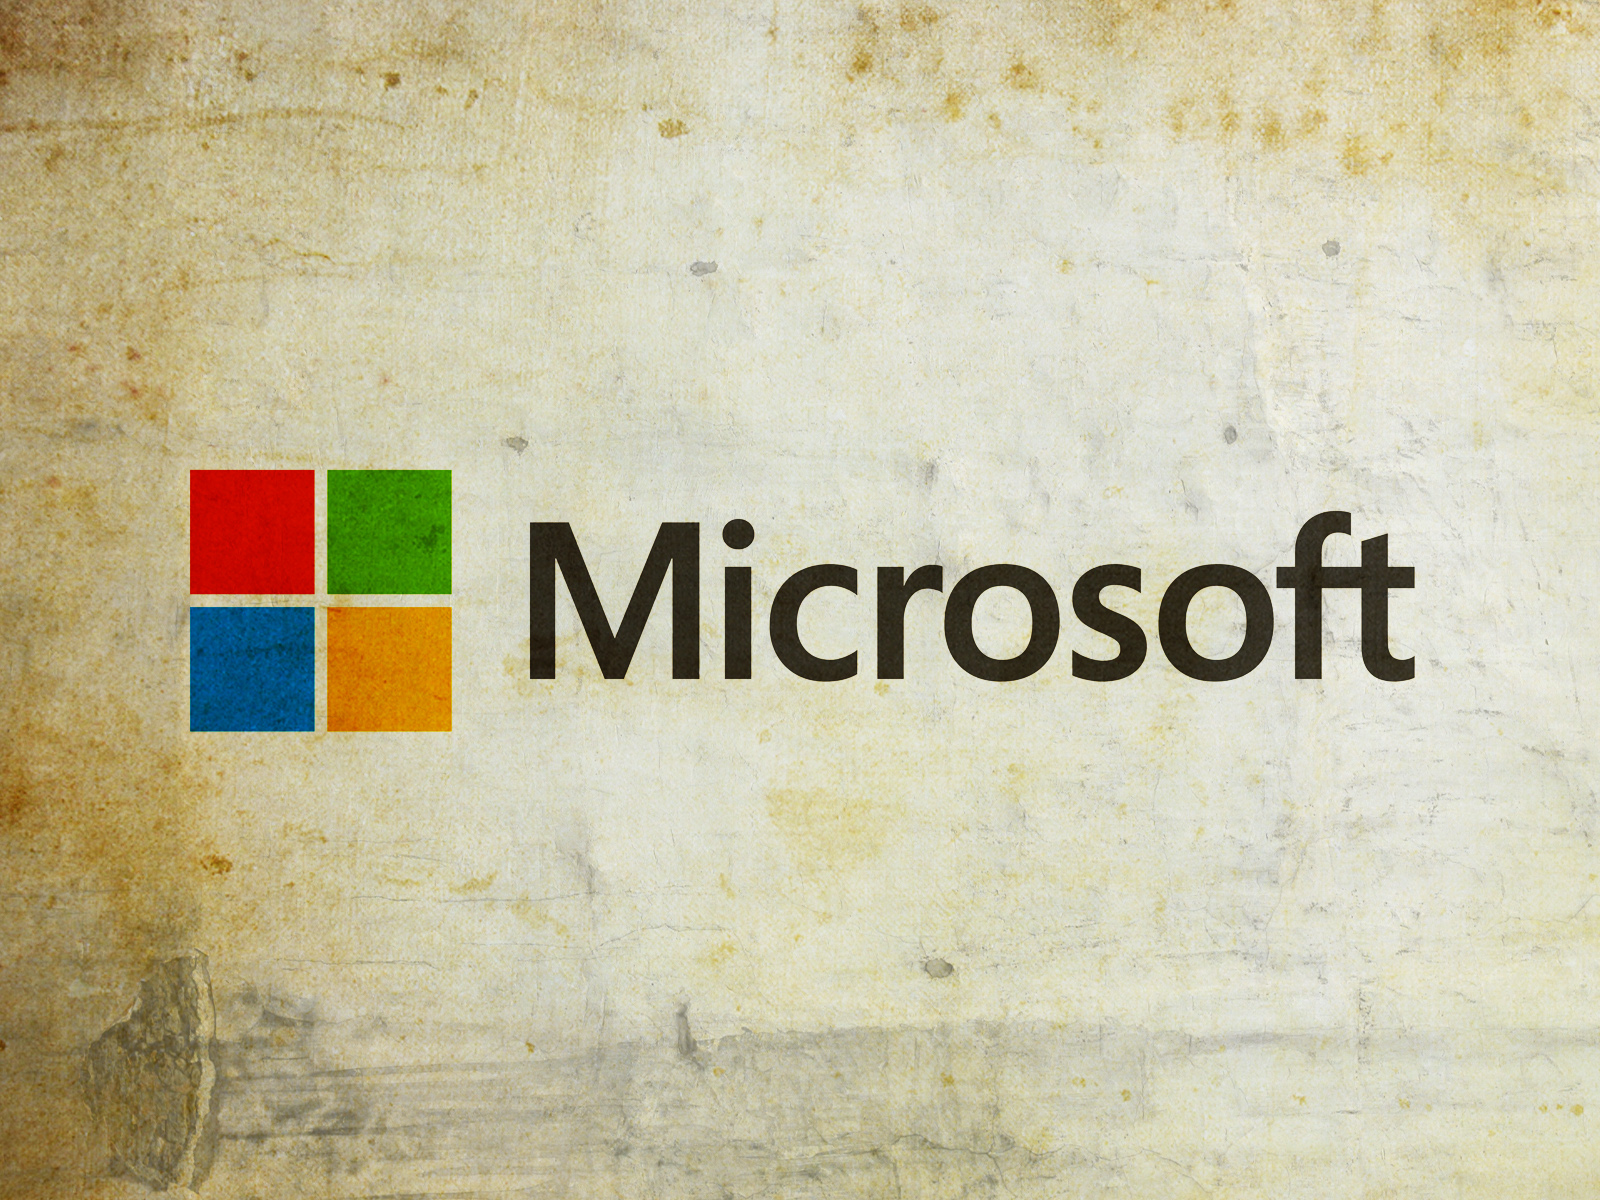 Microsoft Desktop Wallpaper Download 1600x1200